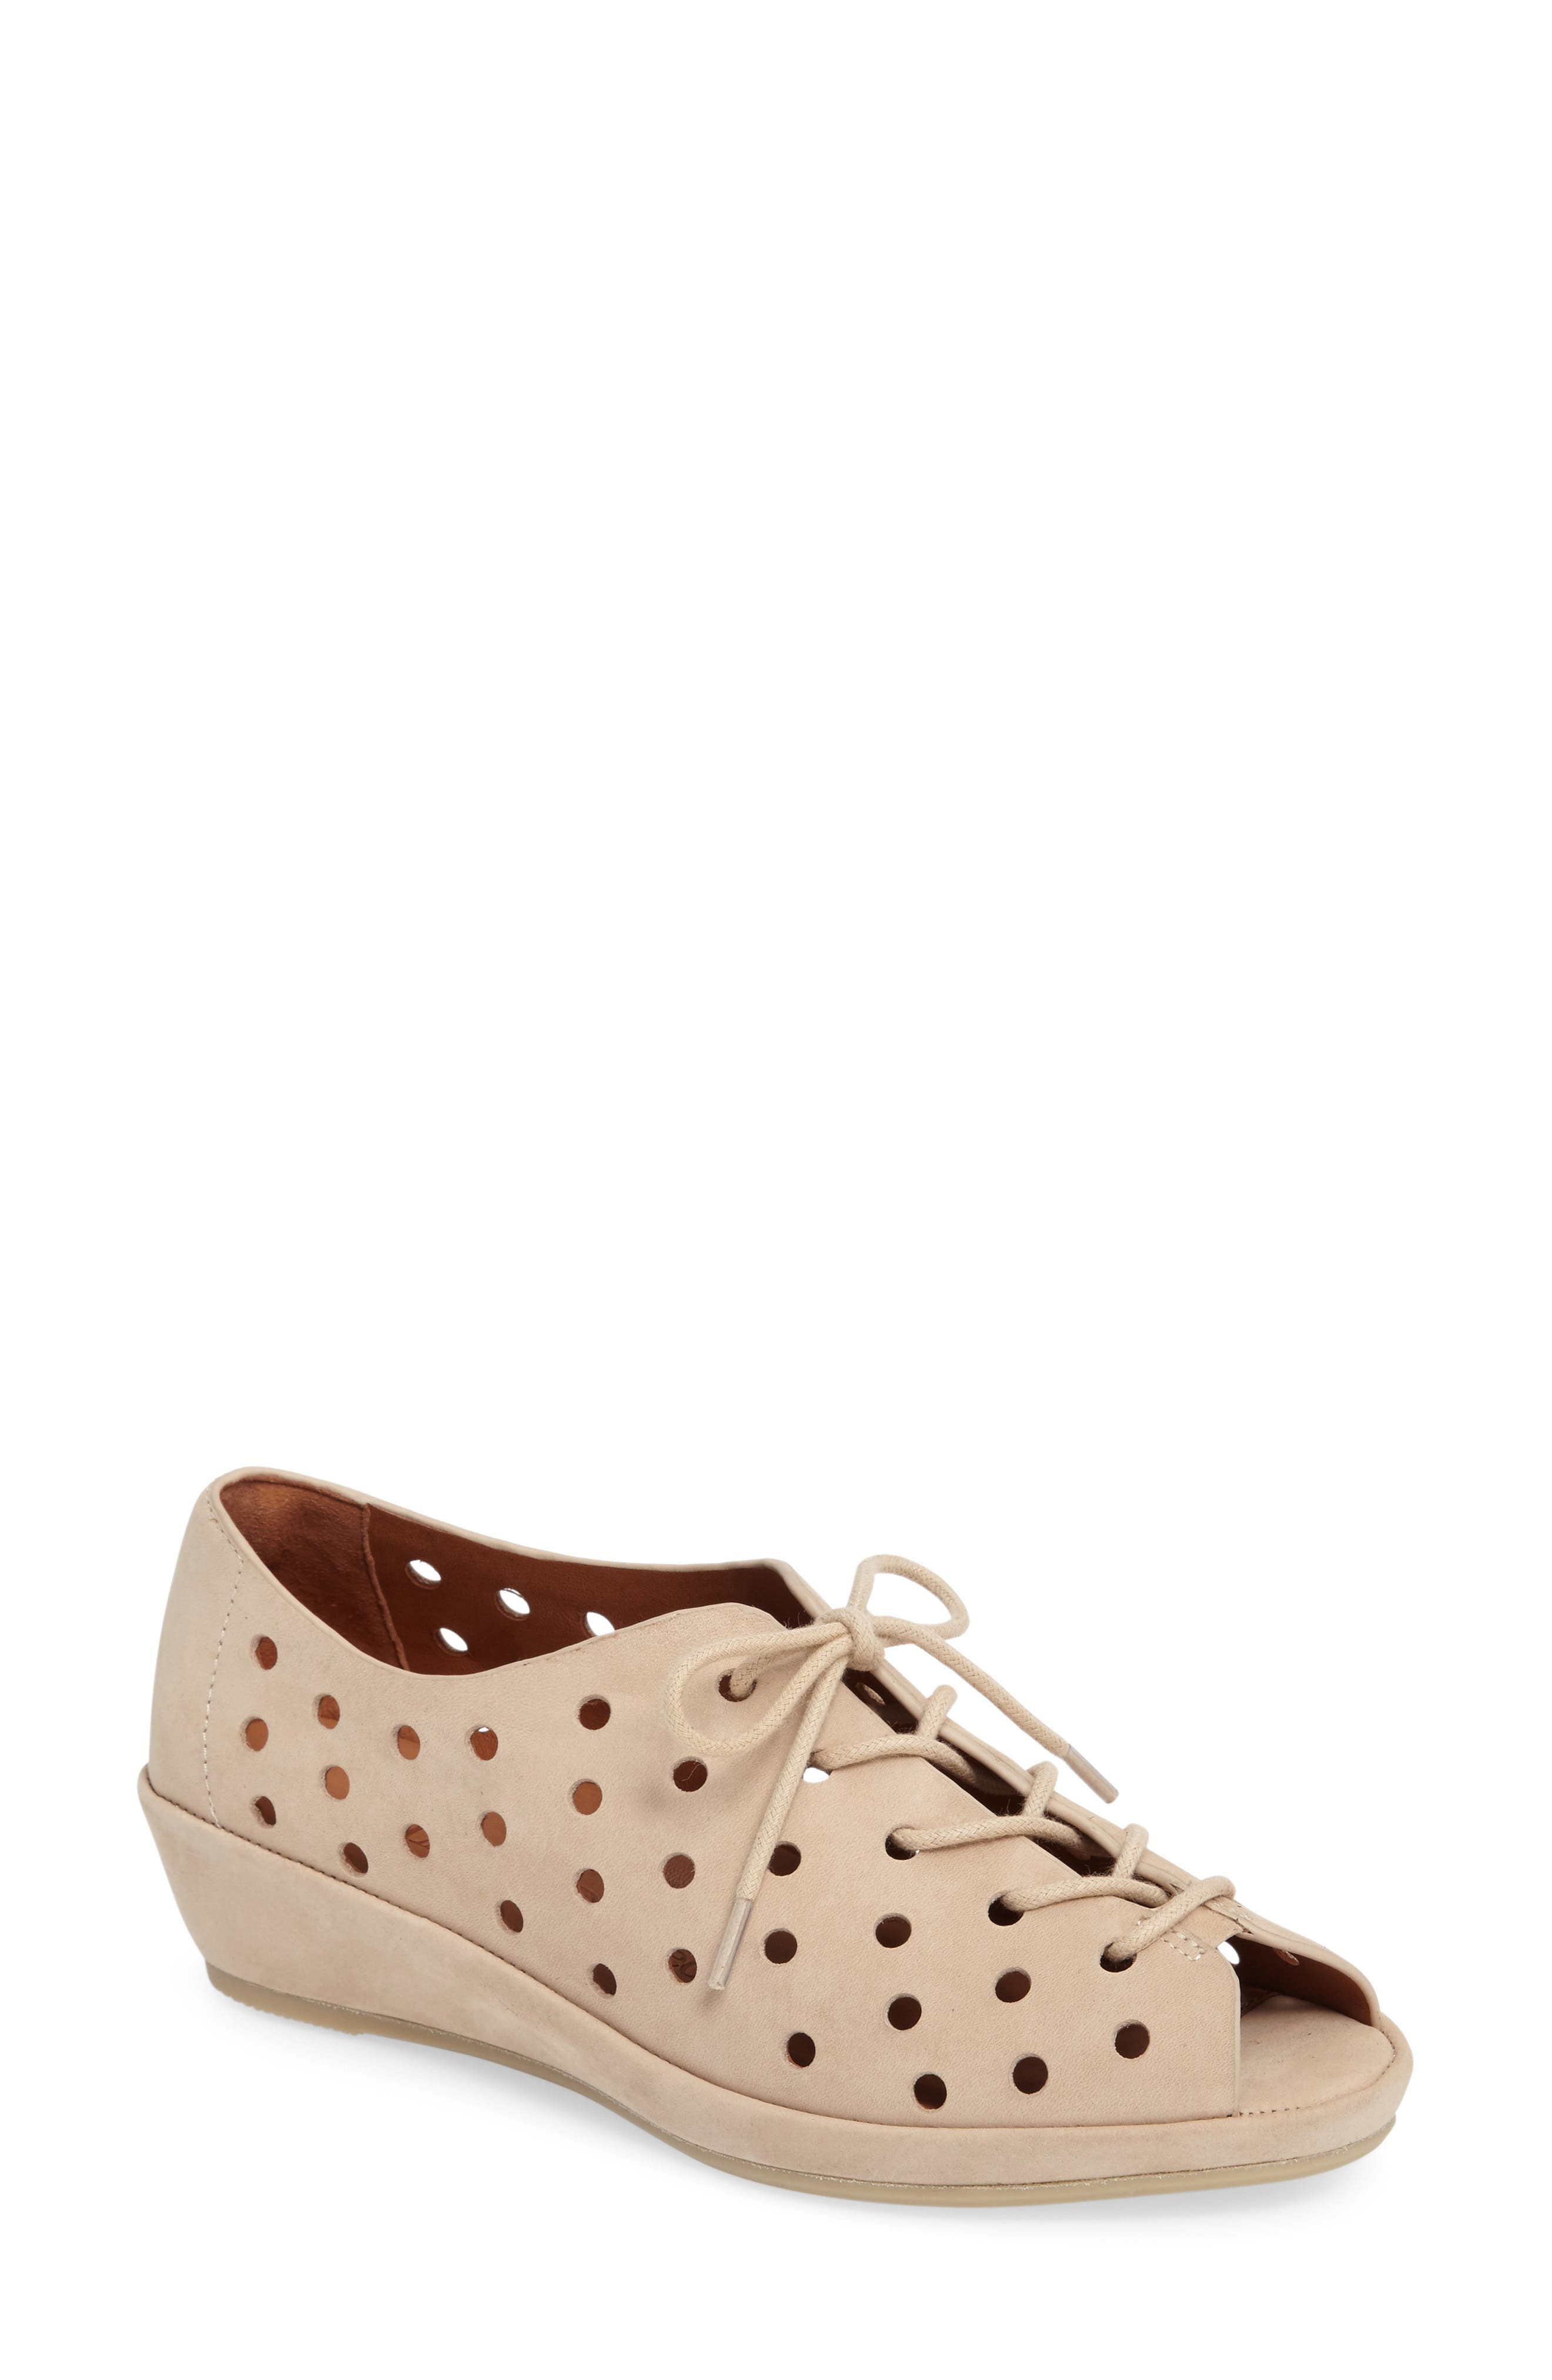 LAMOUR DES PIEDS Boccoo Perforated Lace-Up Oxford